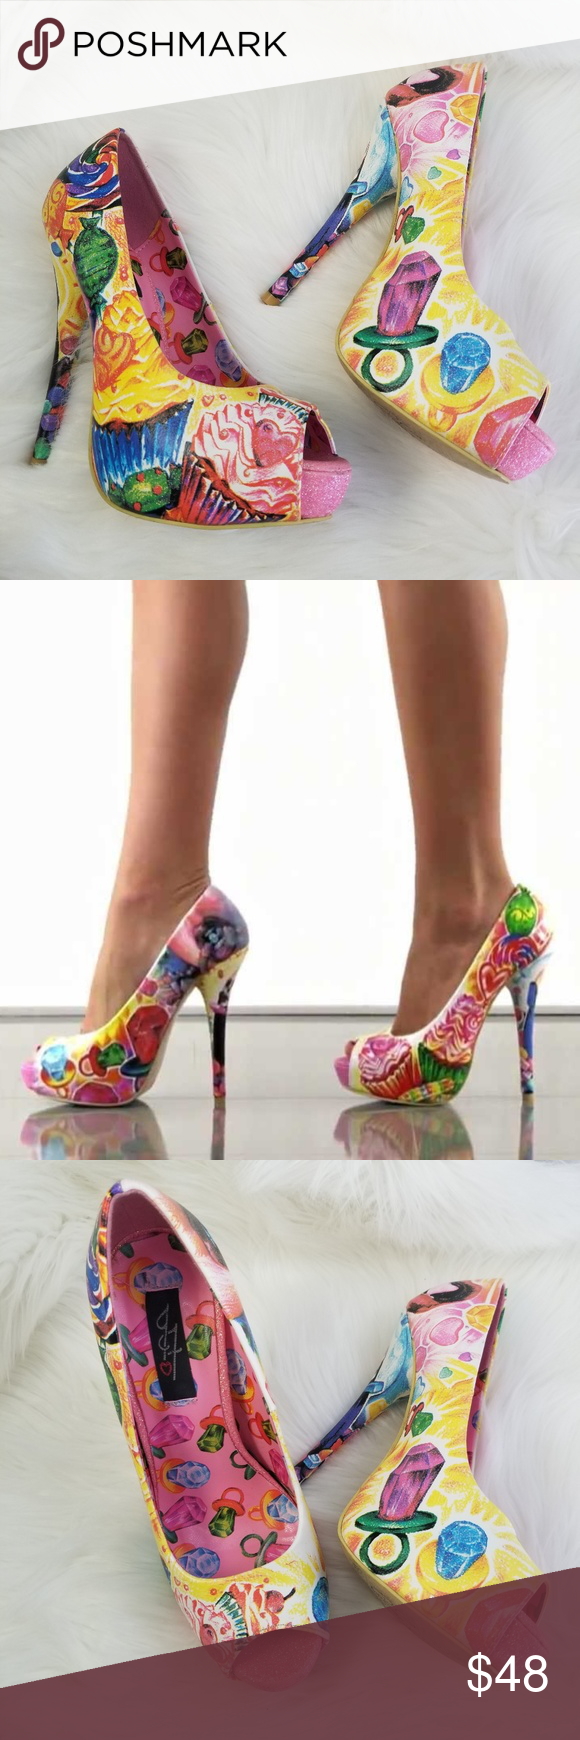 eae61a198e33b5 IRON FIST Sweets For My Sweet Candy Platform Heels IRON FIST.  99 Retail.